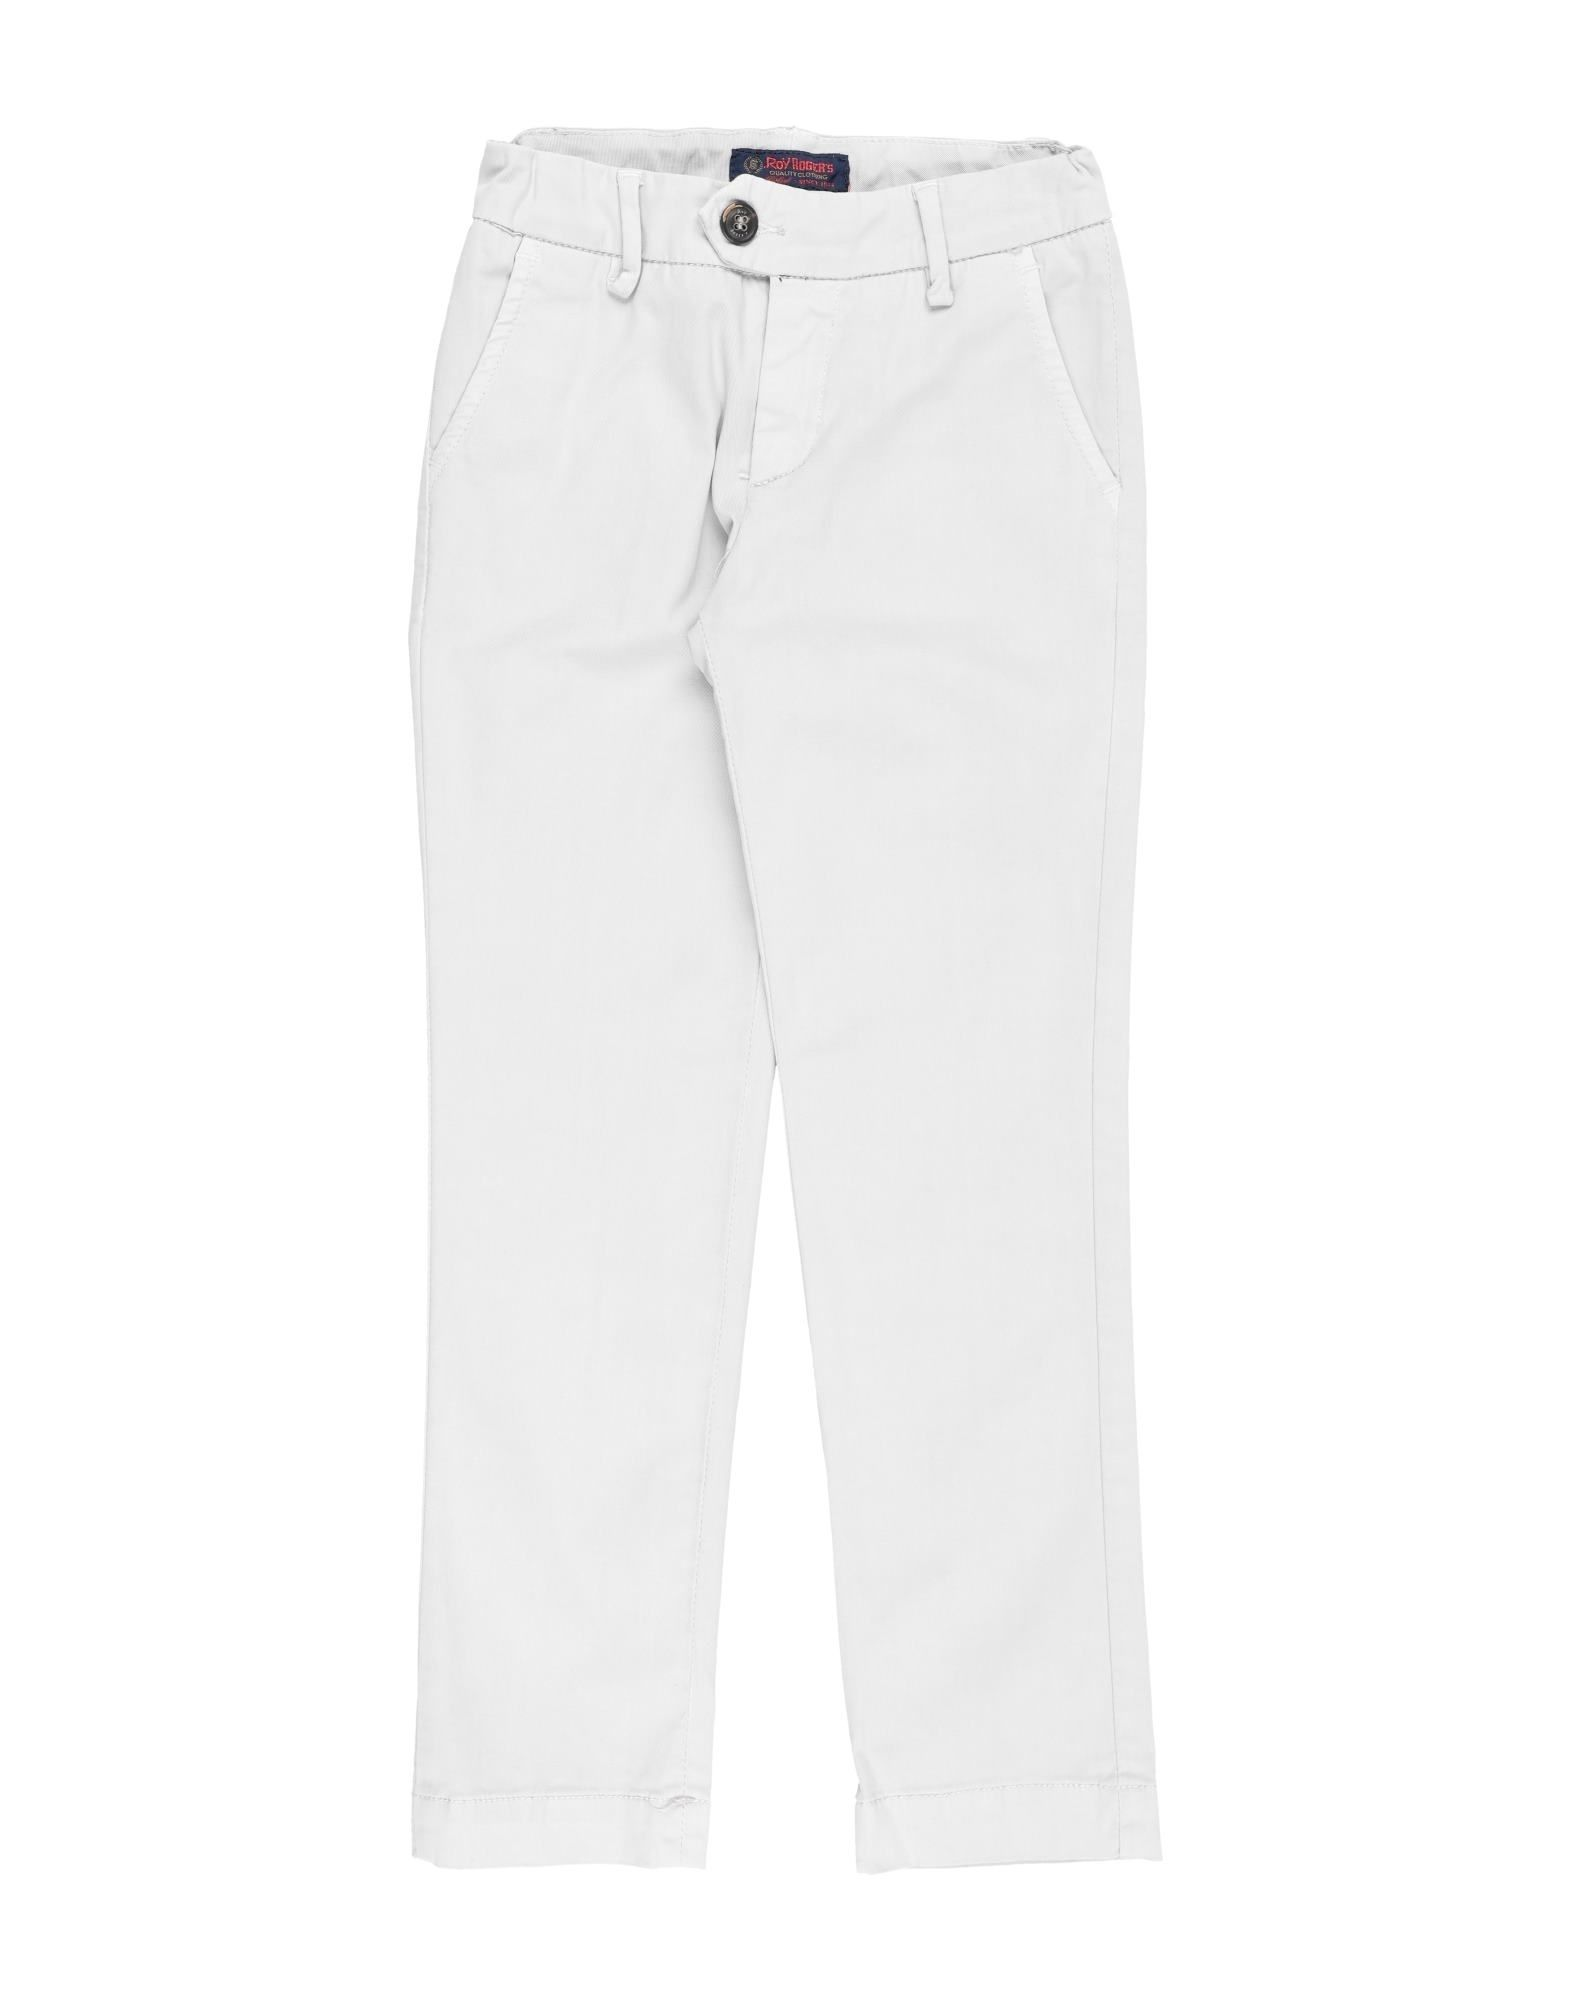 Roy Rogers Kids' Casual Pants In White